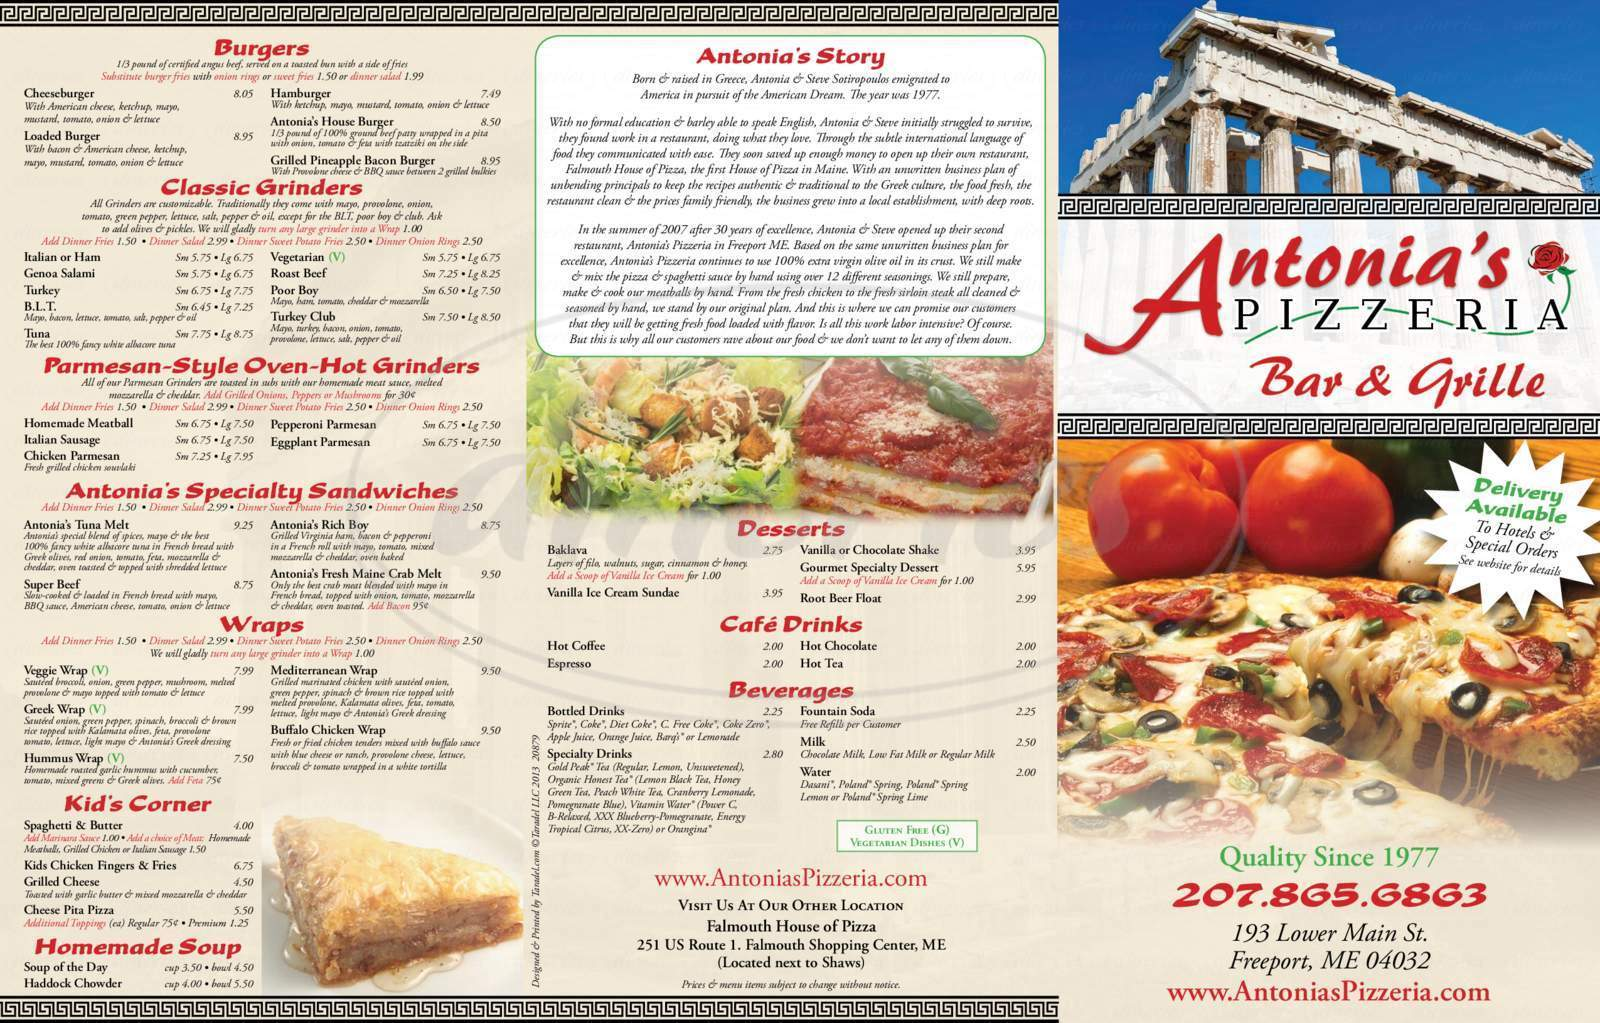 menu for Antonia's Pizzeria